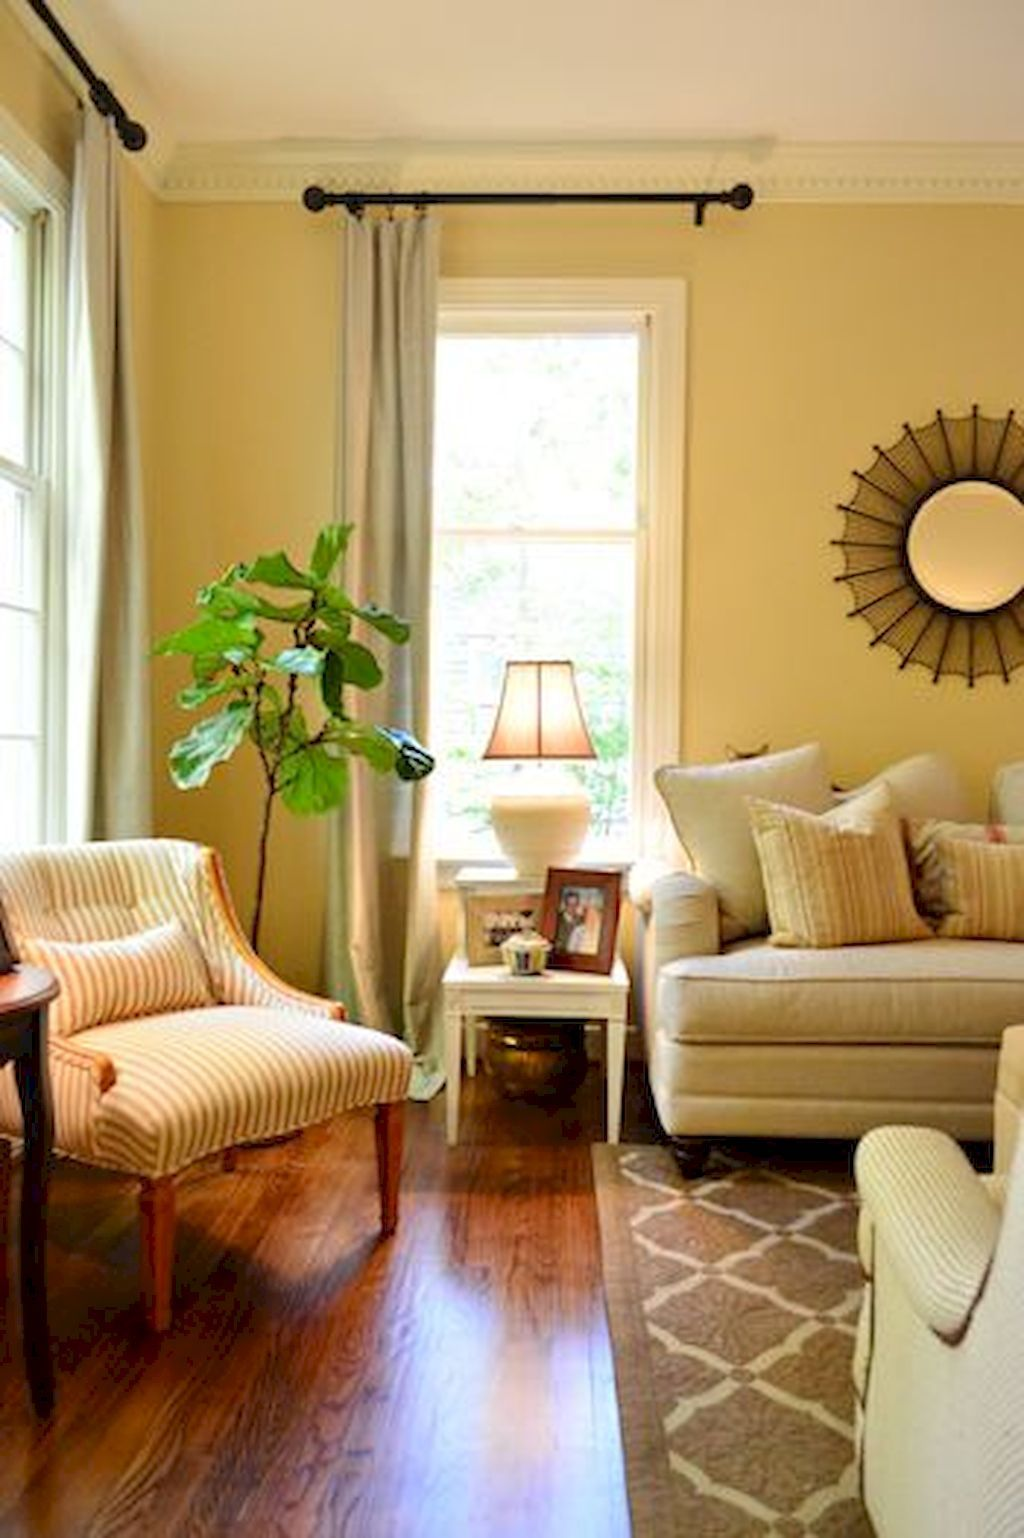 Grateful Stylish Layout Classy Living Room of The Lounge Room images